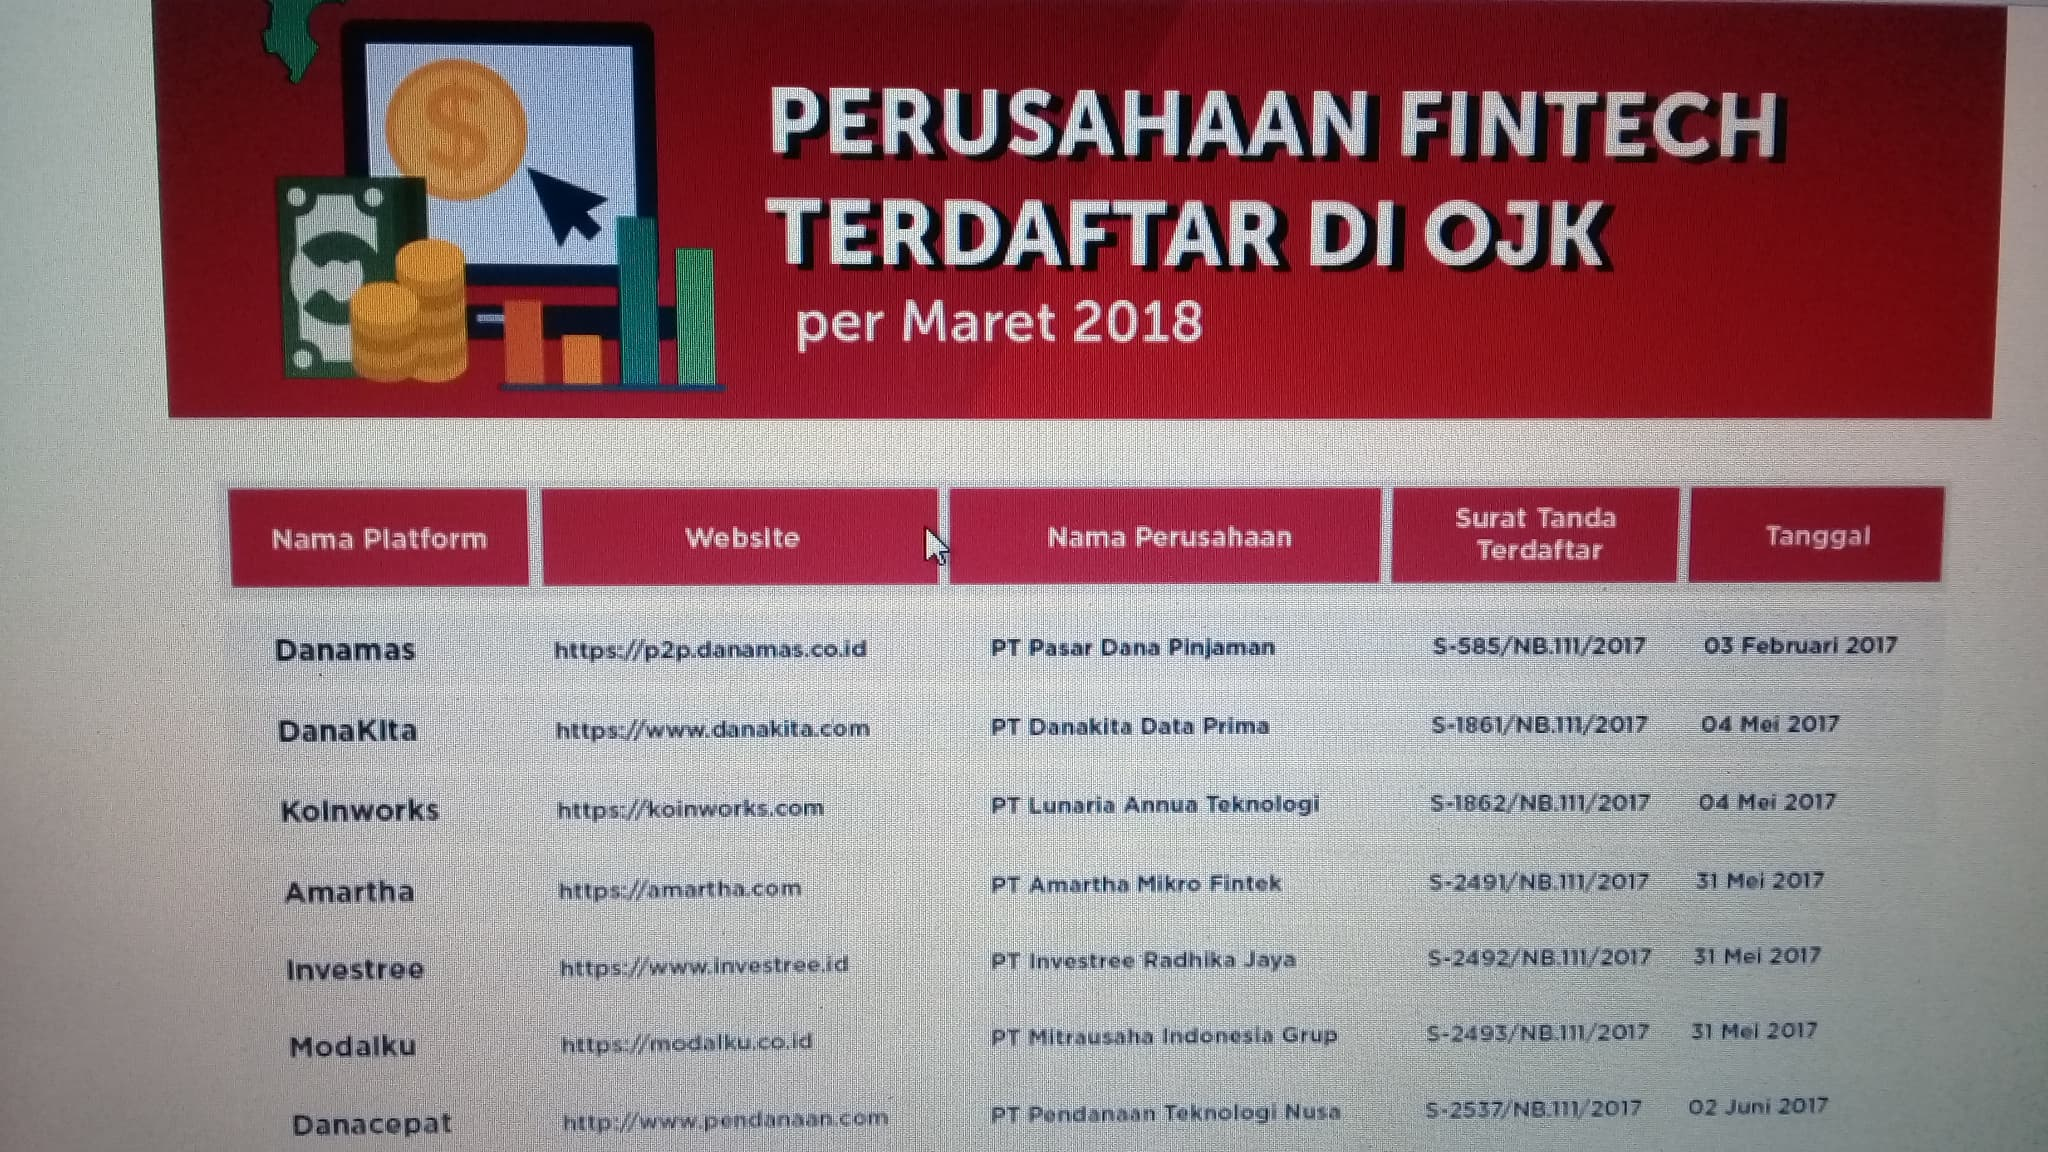 Berburu Fintech Ilegal? Cek Website www.ojk.go.id